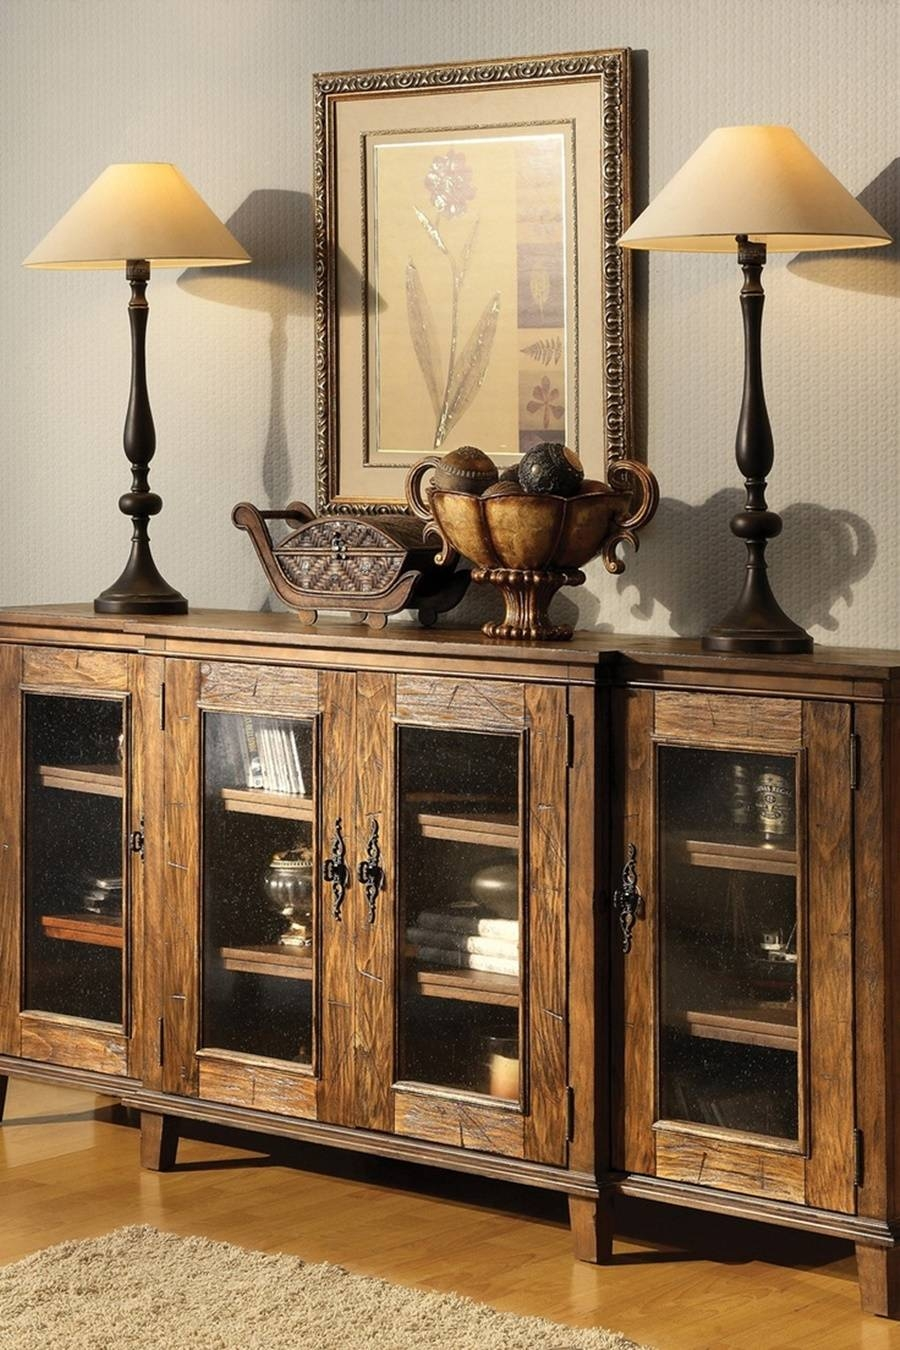 Rustic Sideboard Ideas : Uses Rustic Sideboard Furniture – Gazebo within Rustic Sideboard Furniture (Image 14 of 15)